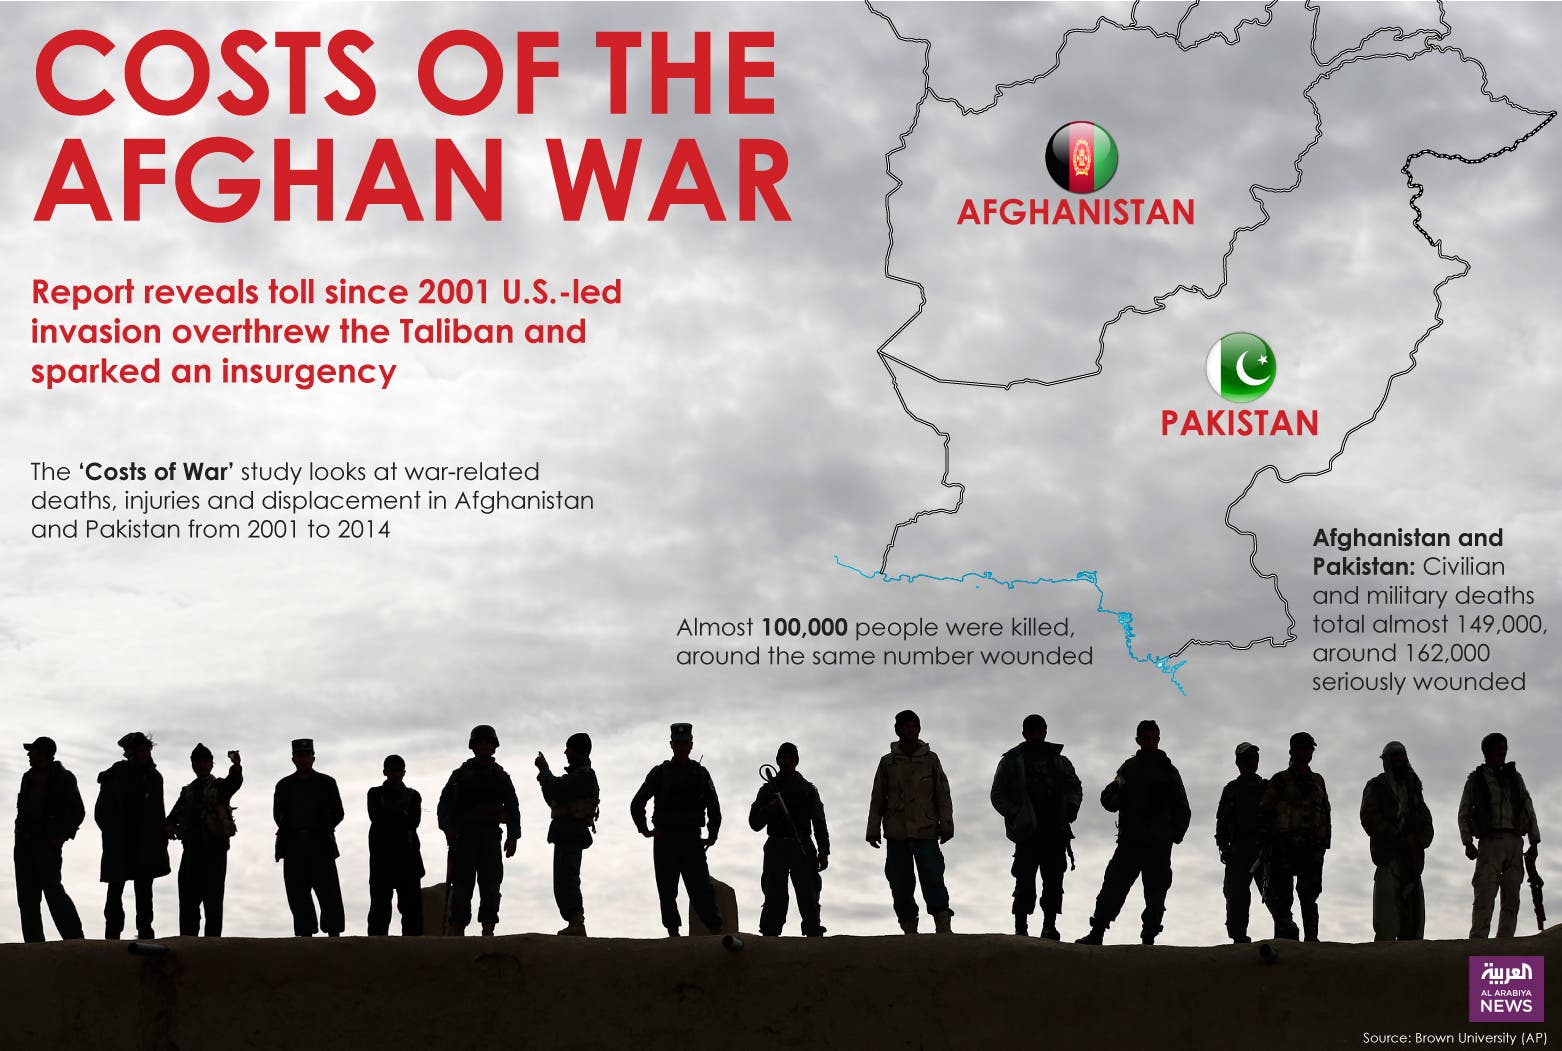 Infographic: Costs of the Afghan War